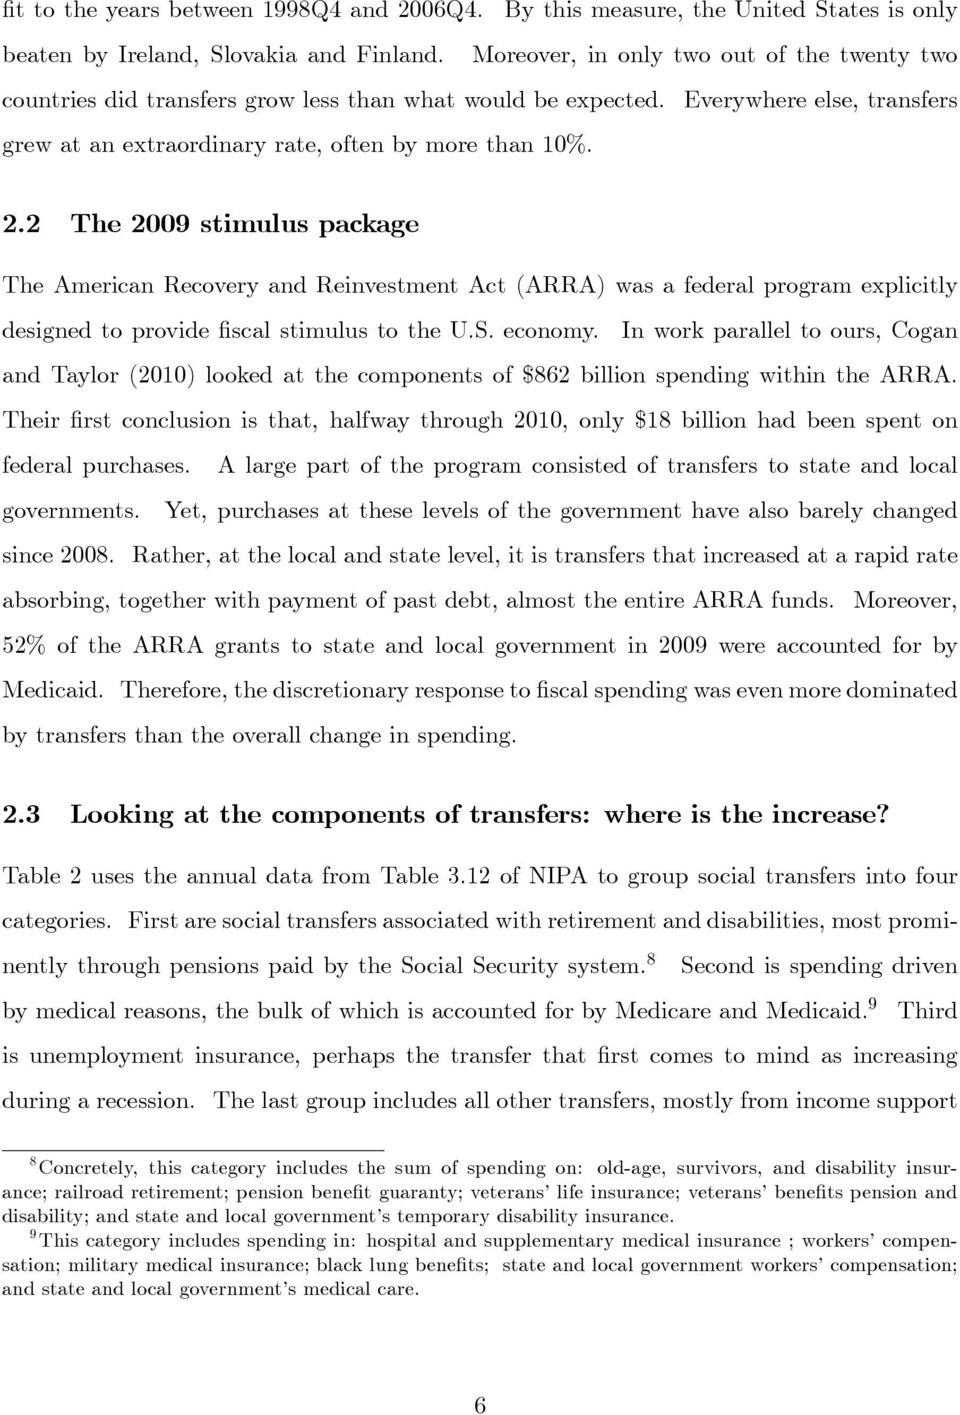 2 The 2009 stimulus package The American Recovery and Reinvestment Act (ARRA) was a federal program explicitly designed to provide fiscal stimulus to the U.S. economy.